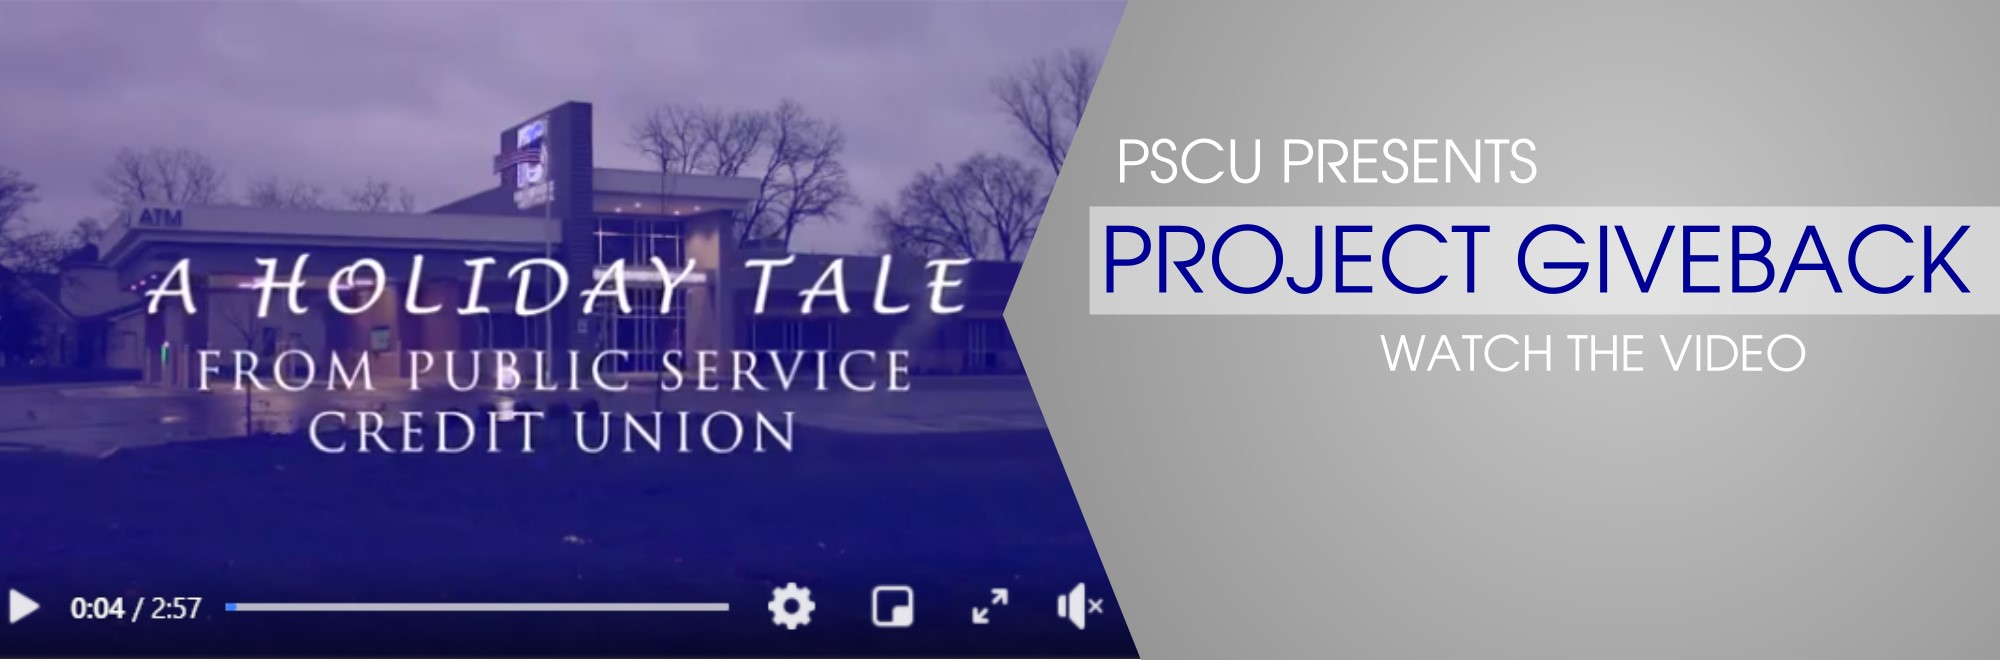 PSCU Presents Project Giveback Watch the video A holiday tale from Public Service Credit Union